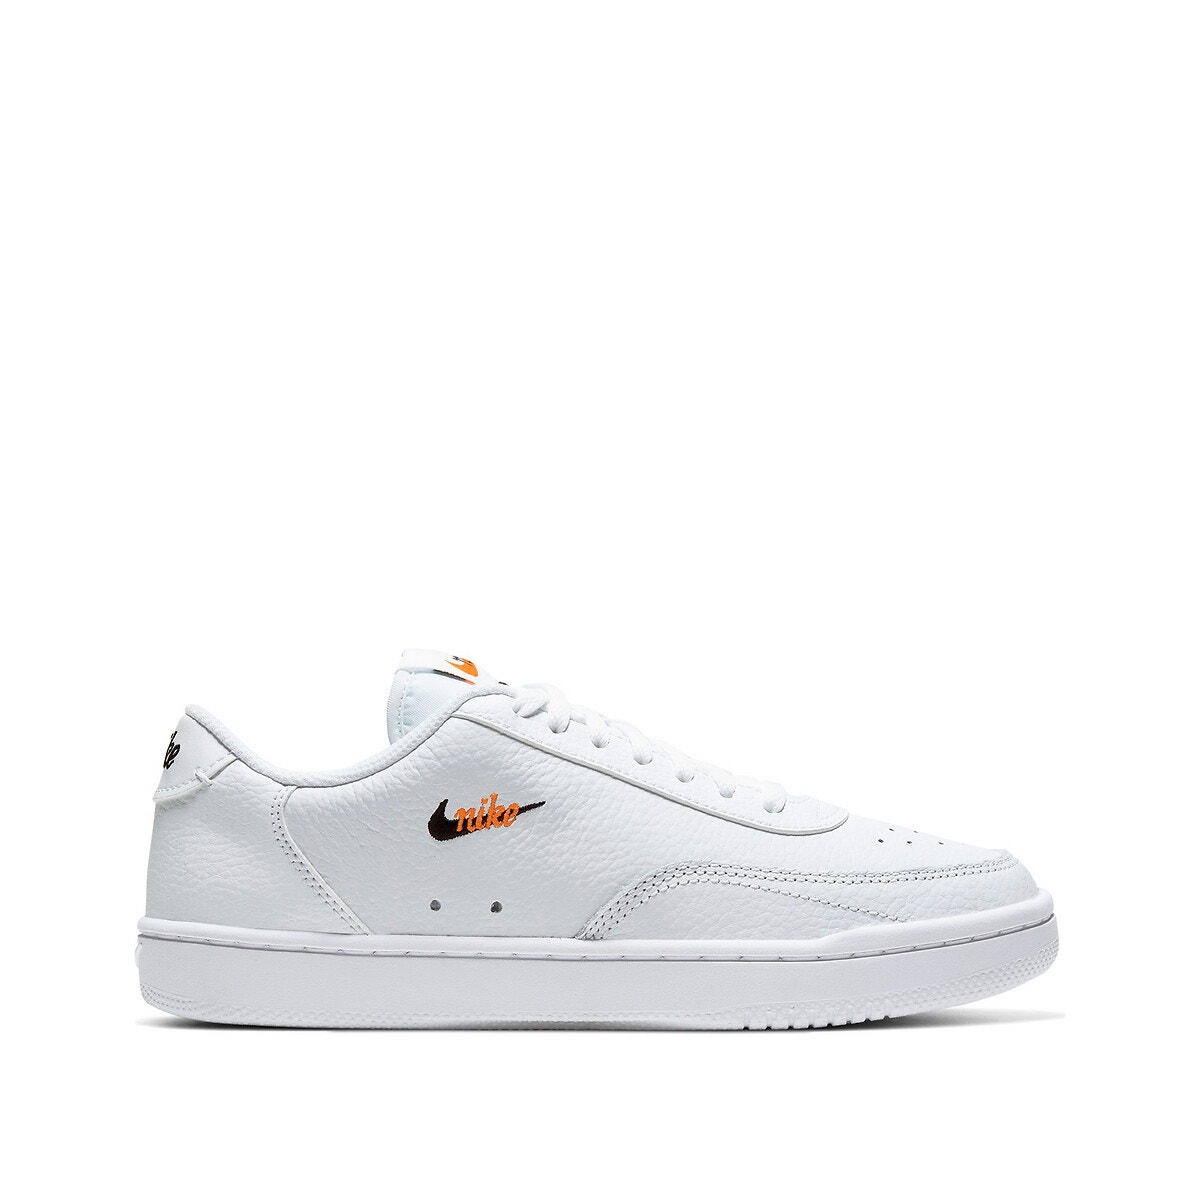 Chaussures ado fille NIKE | La Redoute